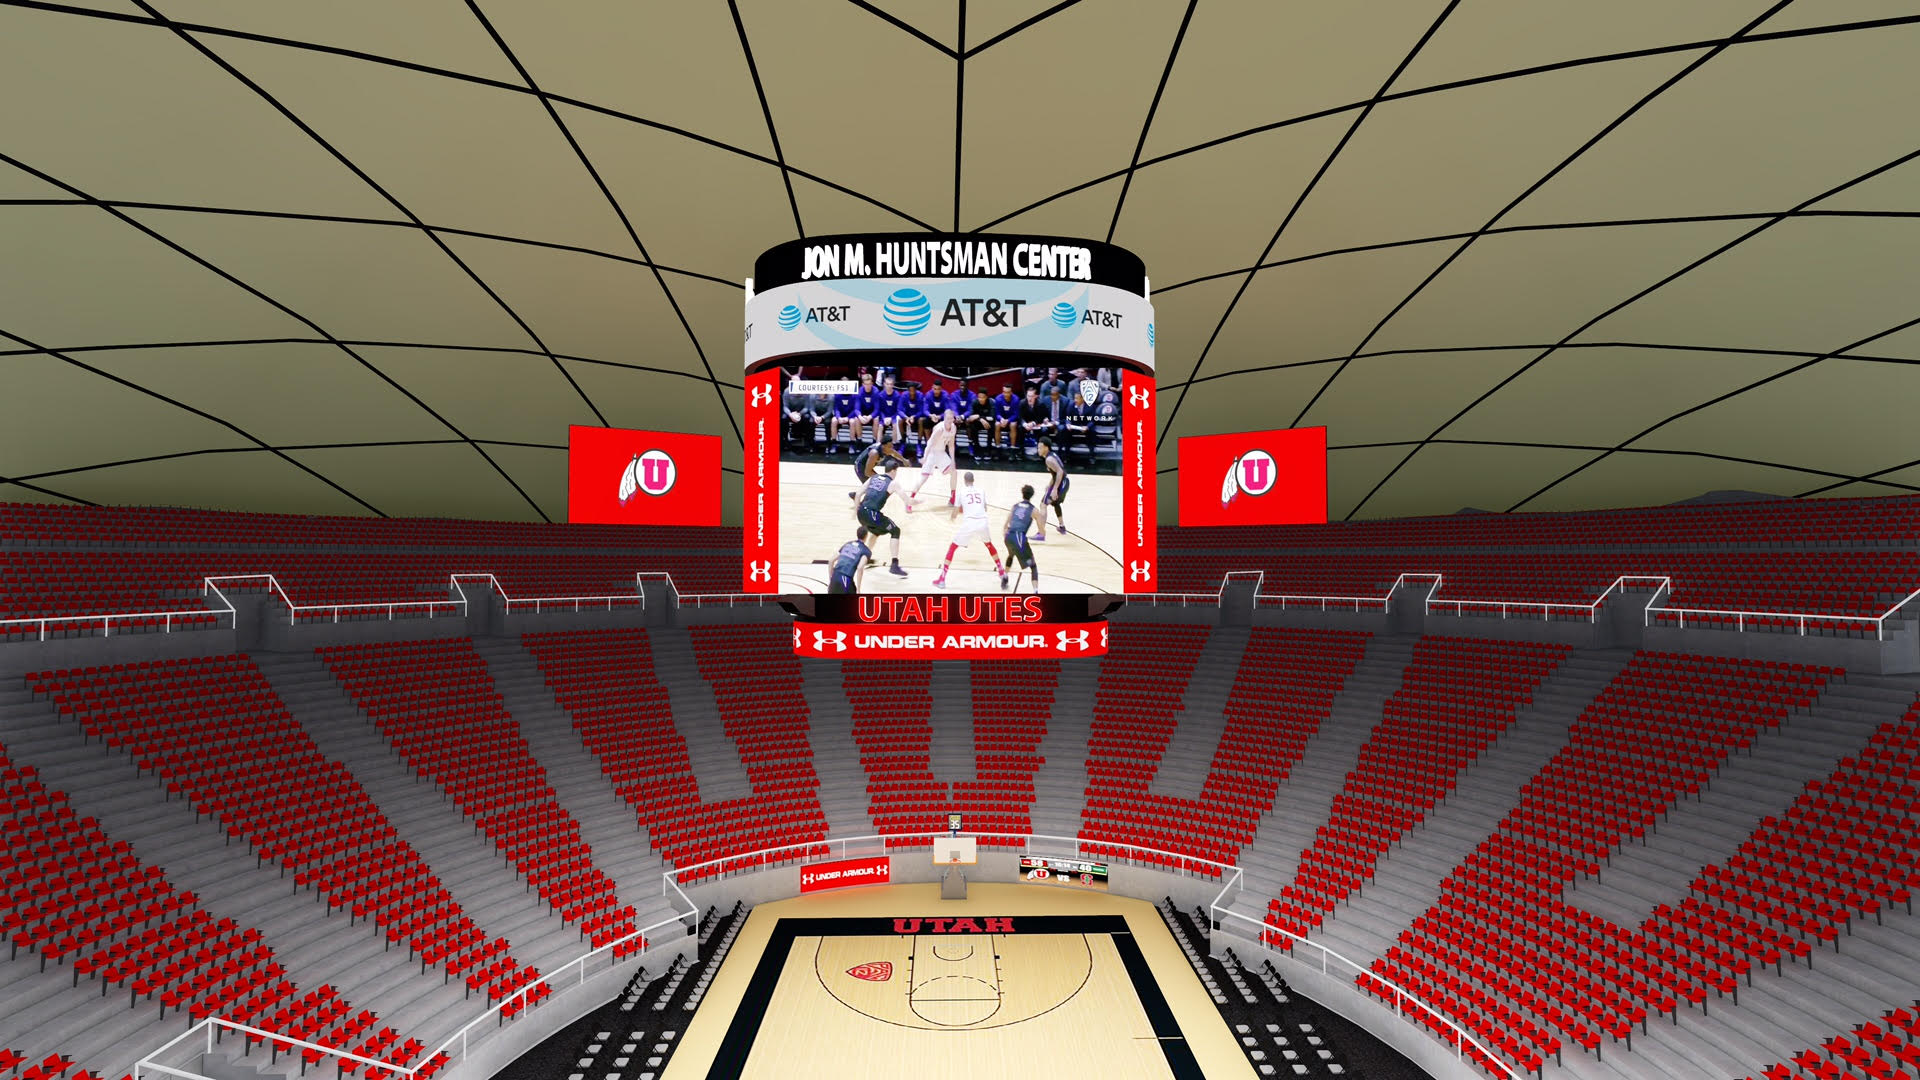 University Of Utah S Jon M Huntsman Center To Undergo